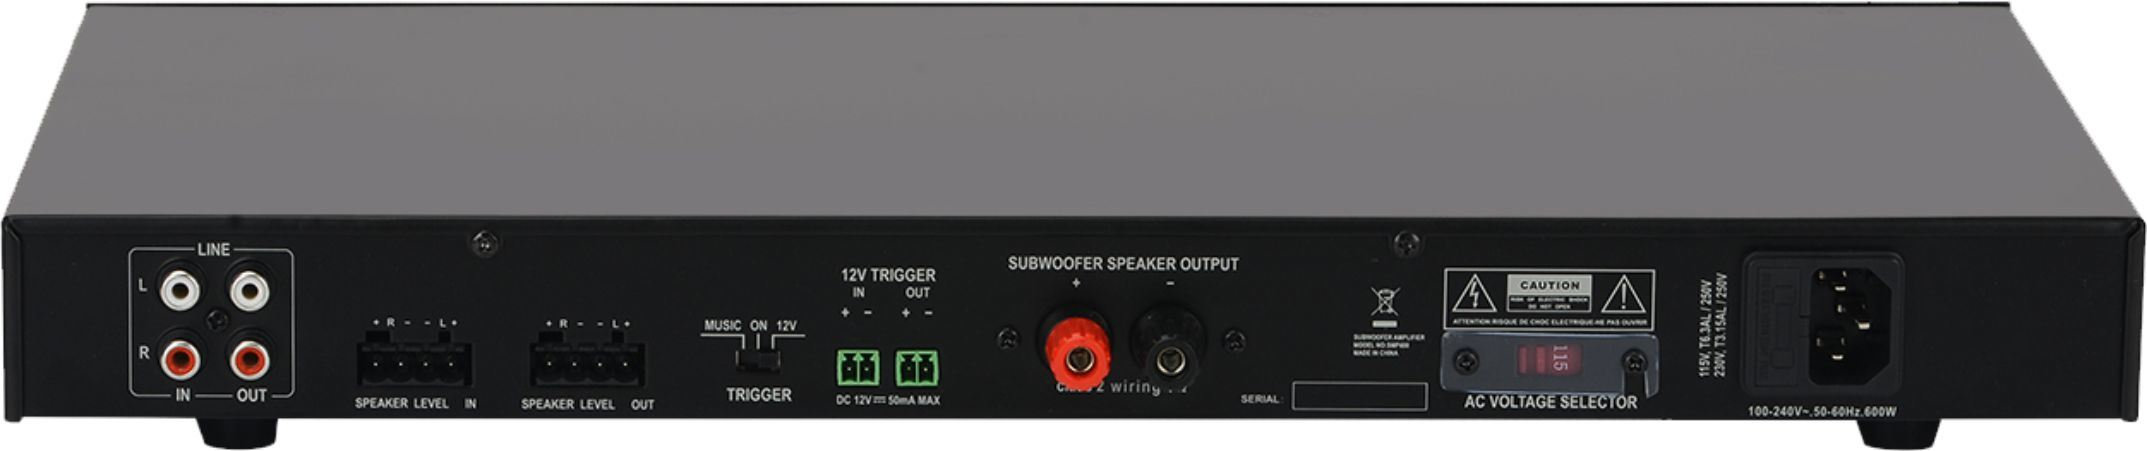 400W Subwoofer Amplifier with DSP Control